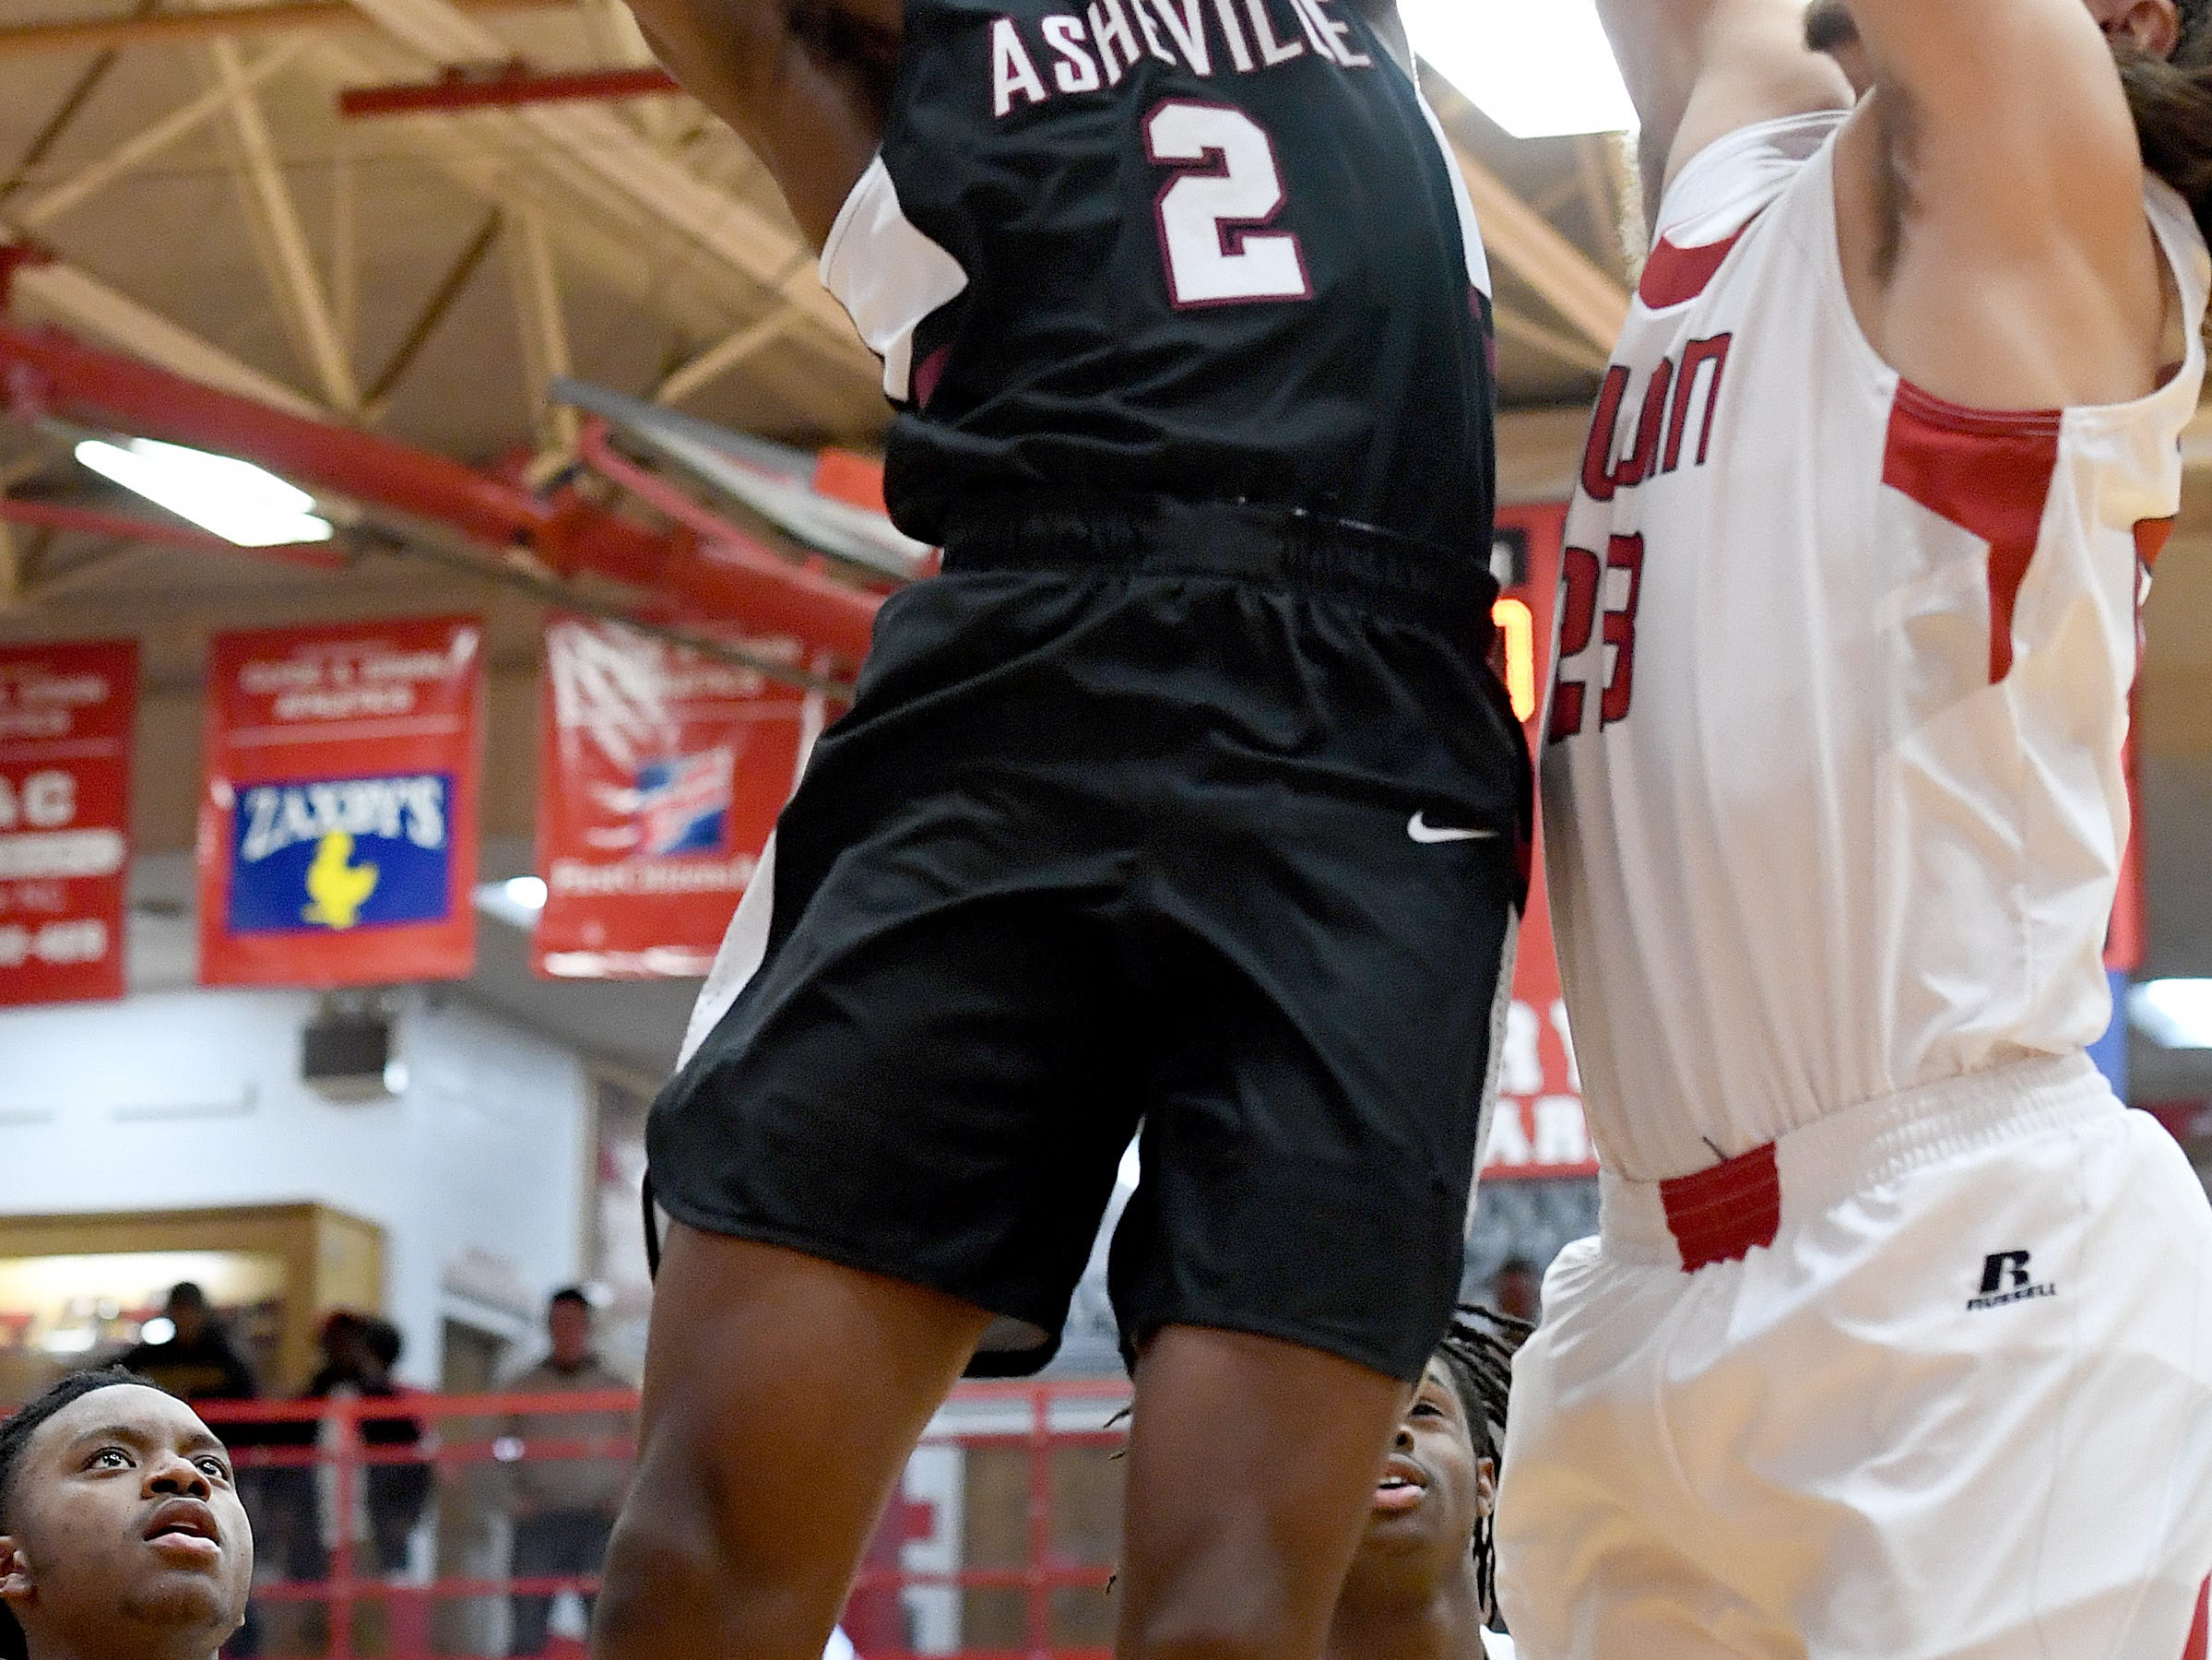 Erwin hosted Asheville in boys basketball on Jan. 22, 2019. The Cougars defeated the Warriors 57-55.